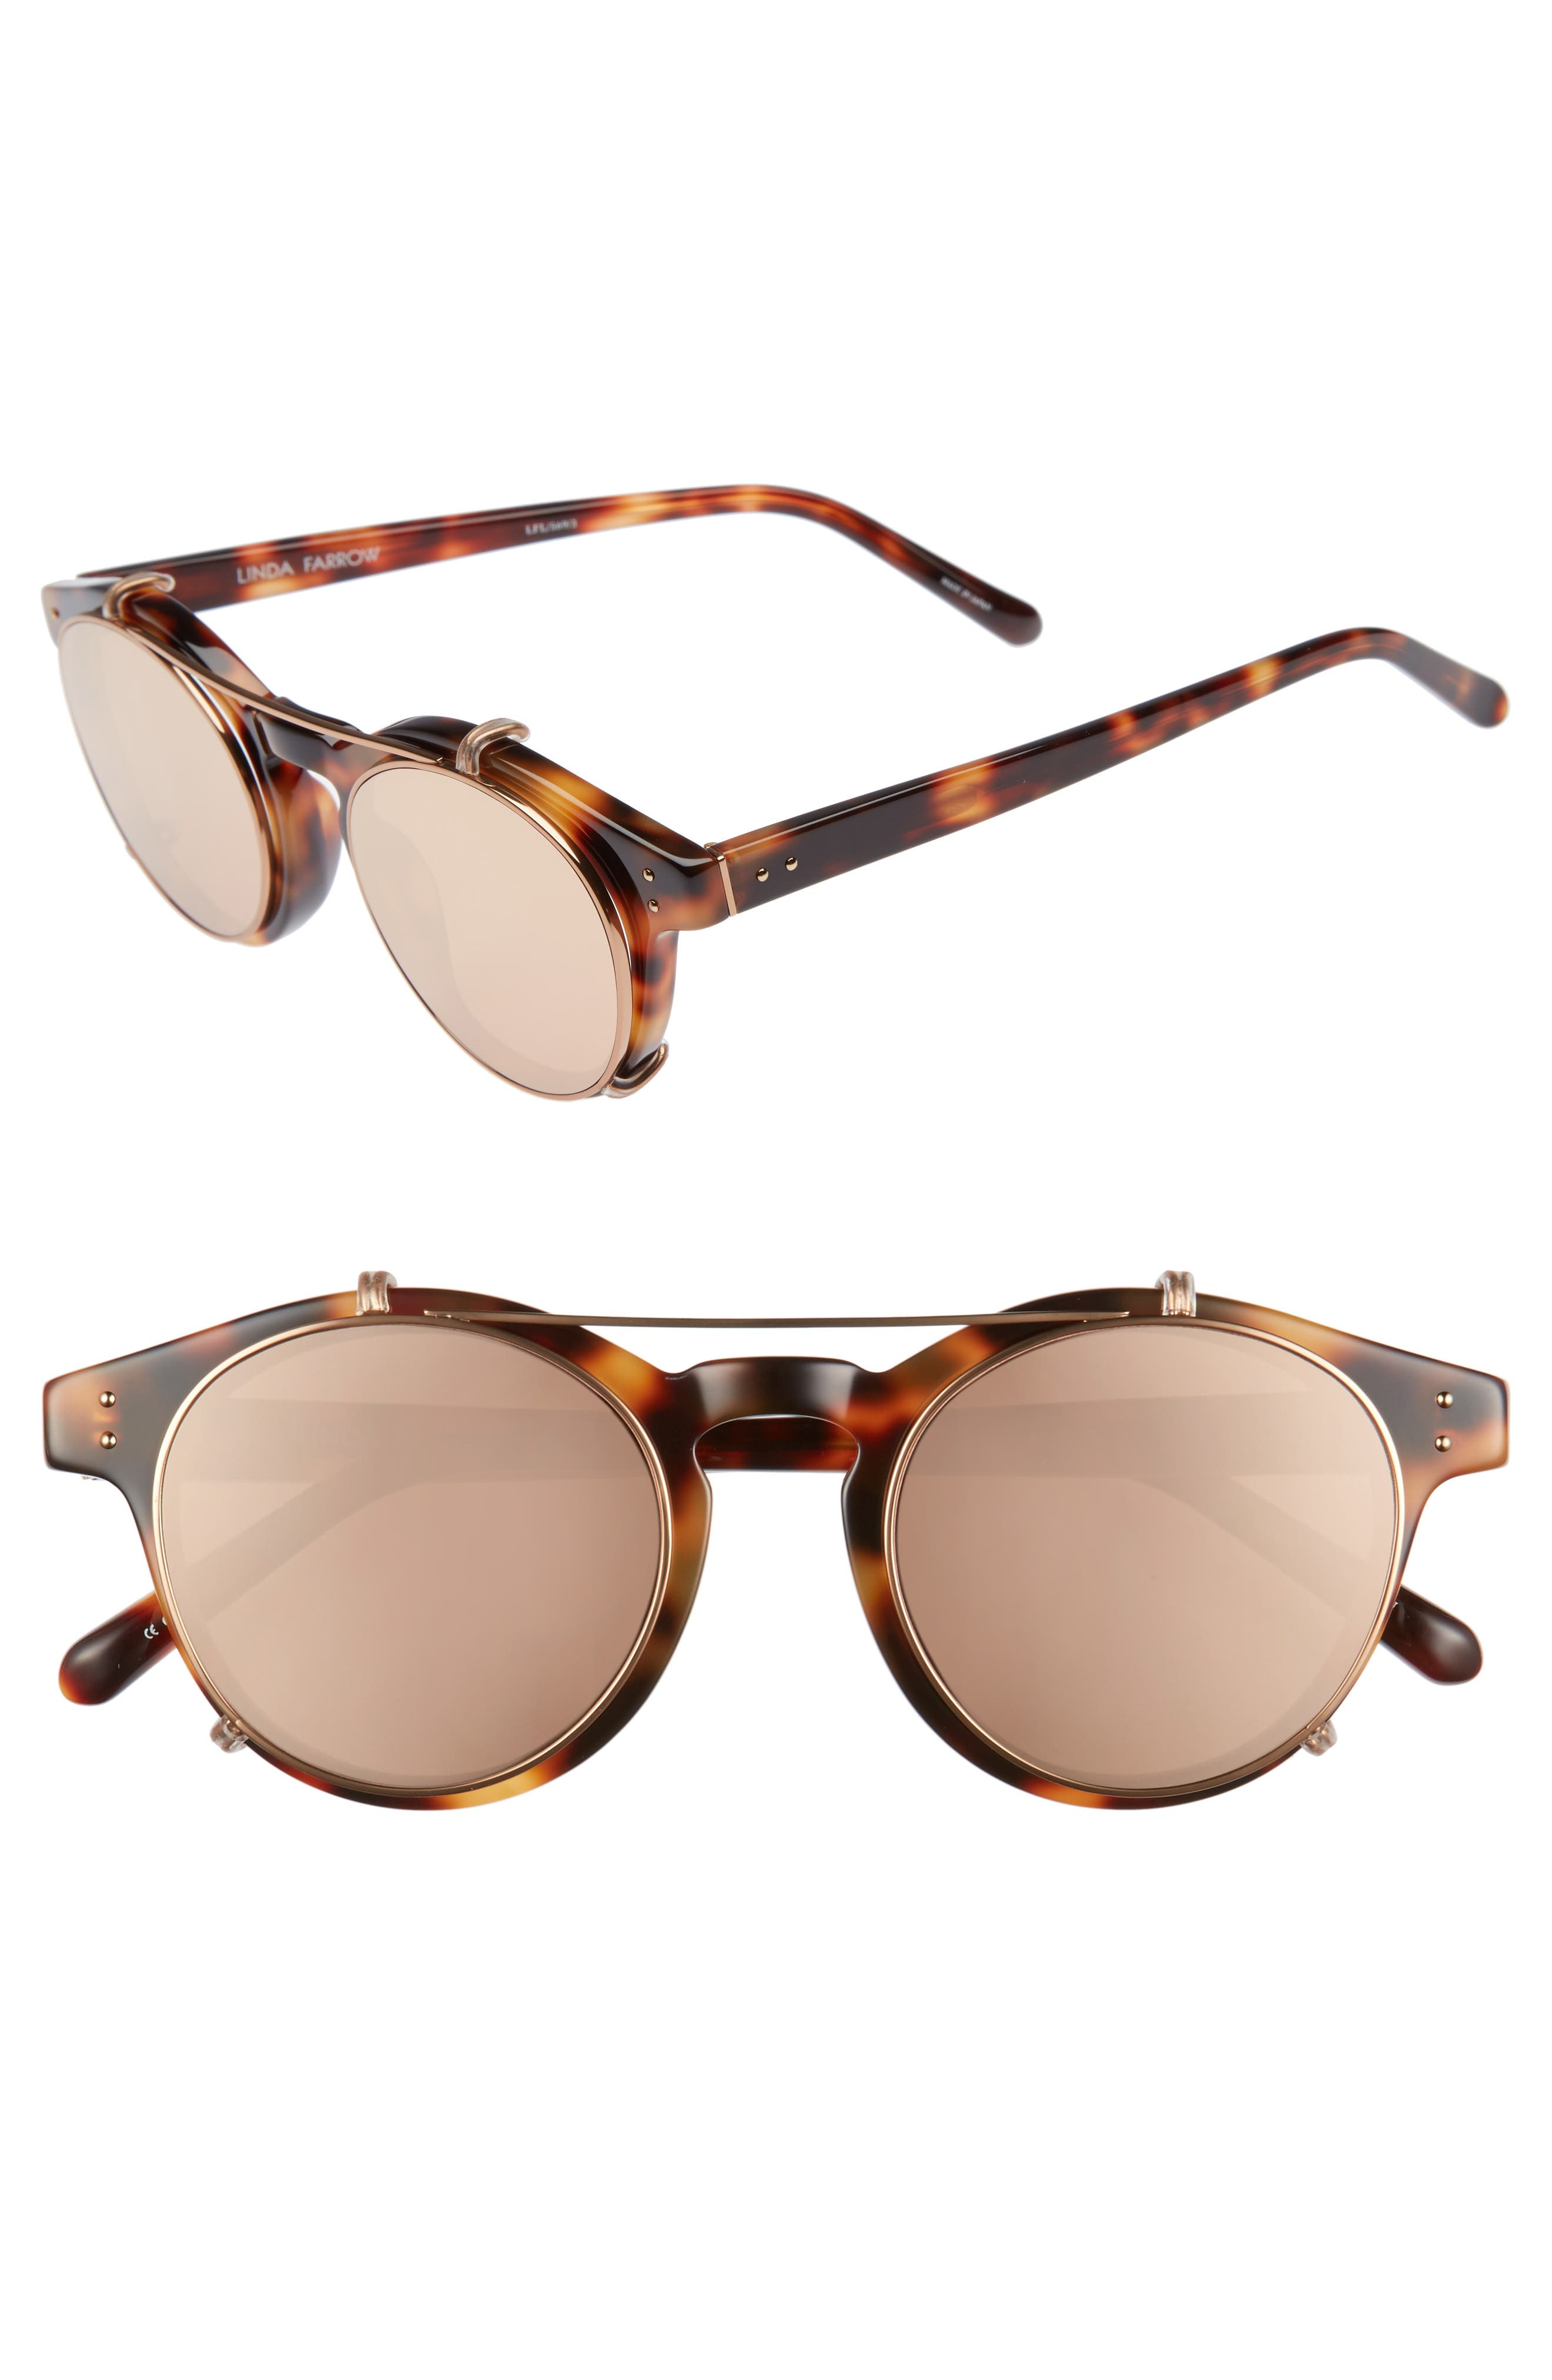 Alternate Image 1 Selected - Linda Farrow 47mm Optical Glasses with Clip-On 18 Karat Rose Gold Trim Sunglasses